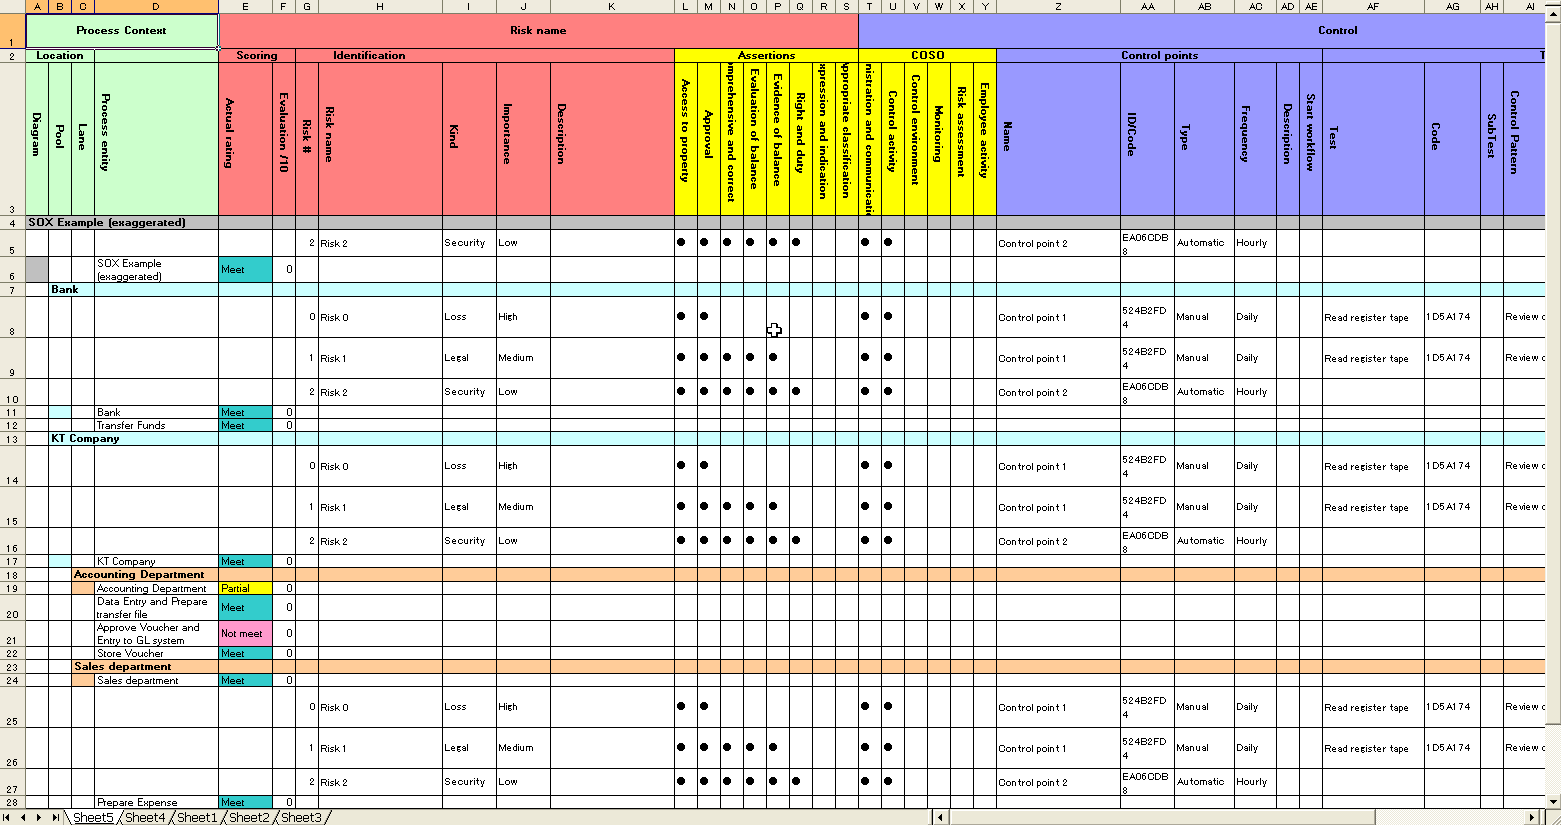 excel spreadsheet skills resume sample customer service resume excel spreadsheet skills resume excel skills online excel training unique excel templates avantage offers an efficient